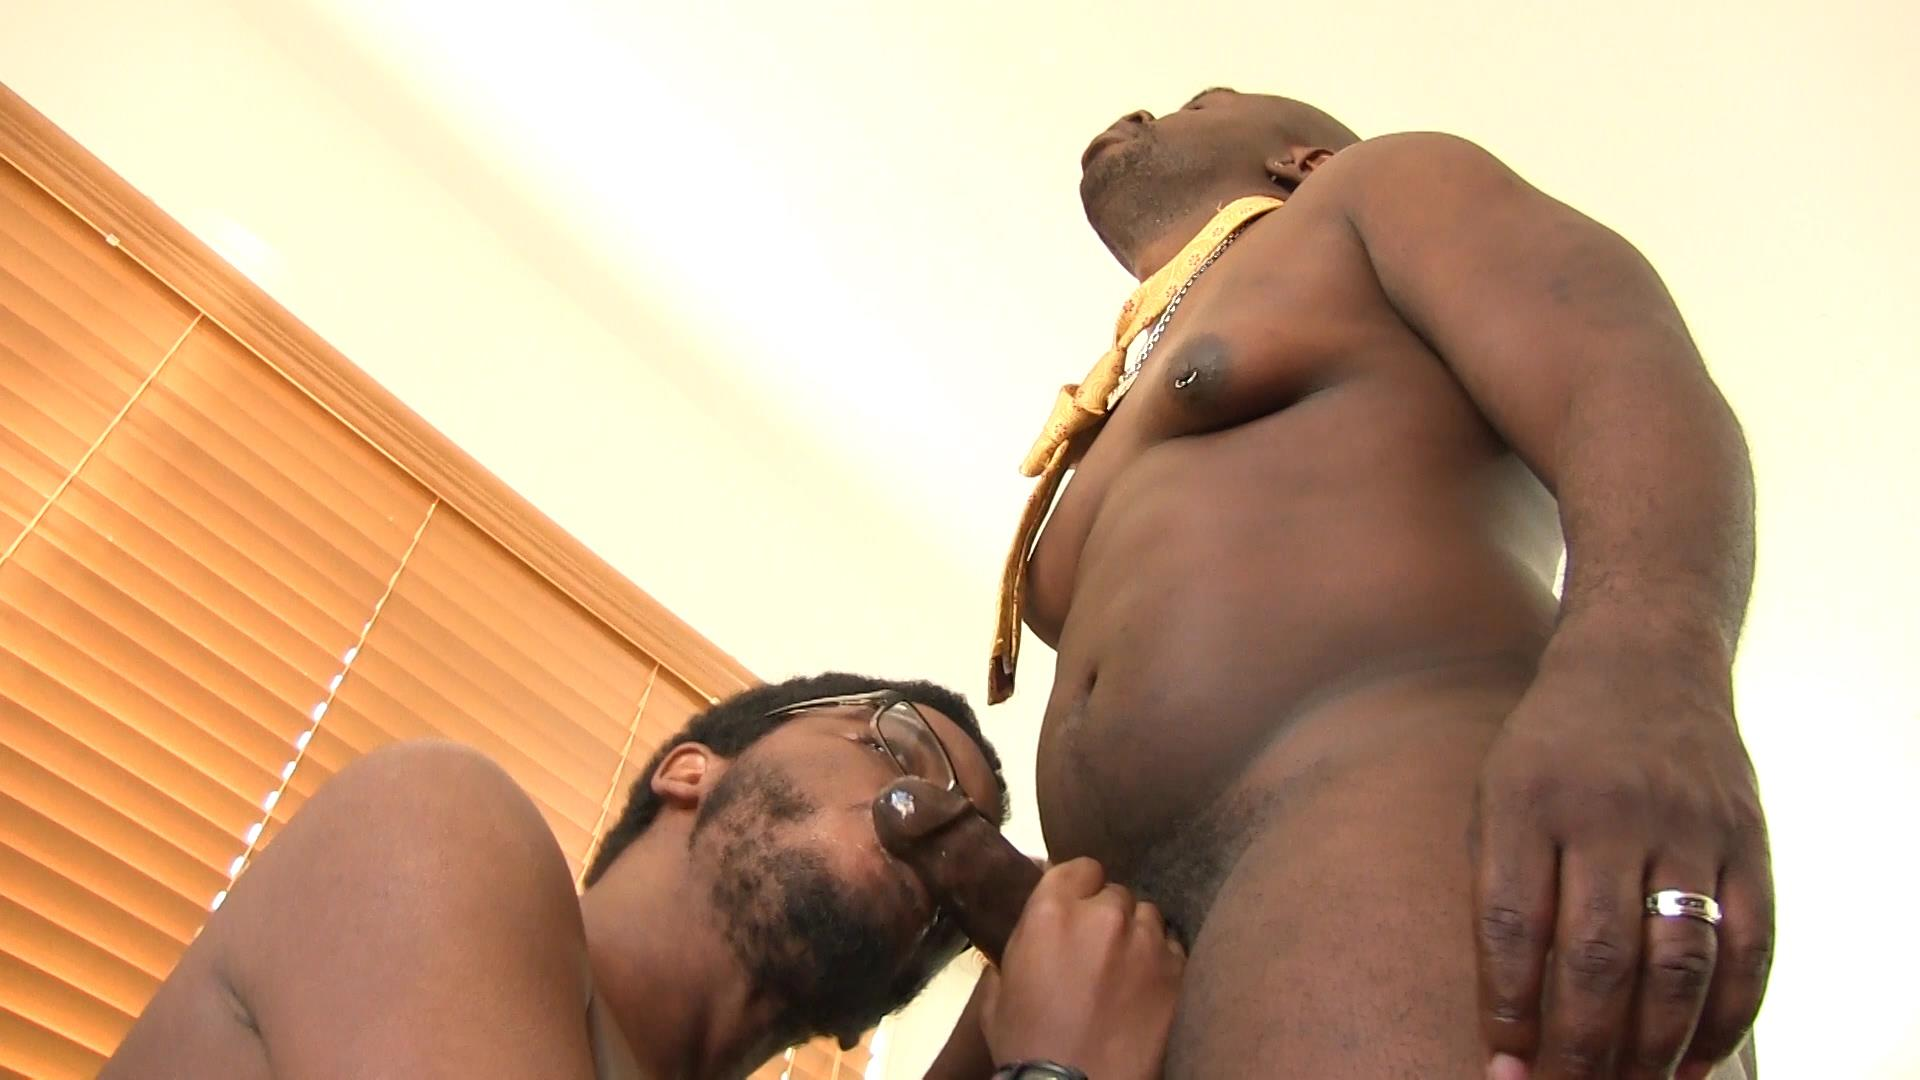 Bareback-Me-Daddy-Daemon-Sadi-and-Donny-Ray-Black-Daddy-Fucking-A-Twink-Bareback-Amateur-Gay-Porn-08 Black Daddy Barebacks His Black Twink With His Big Black Dick